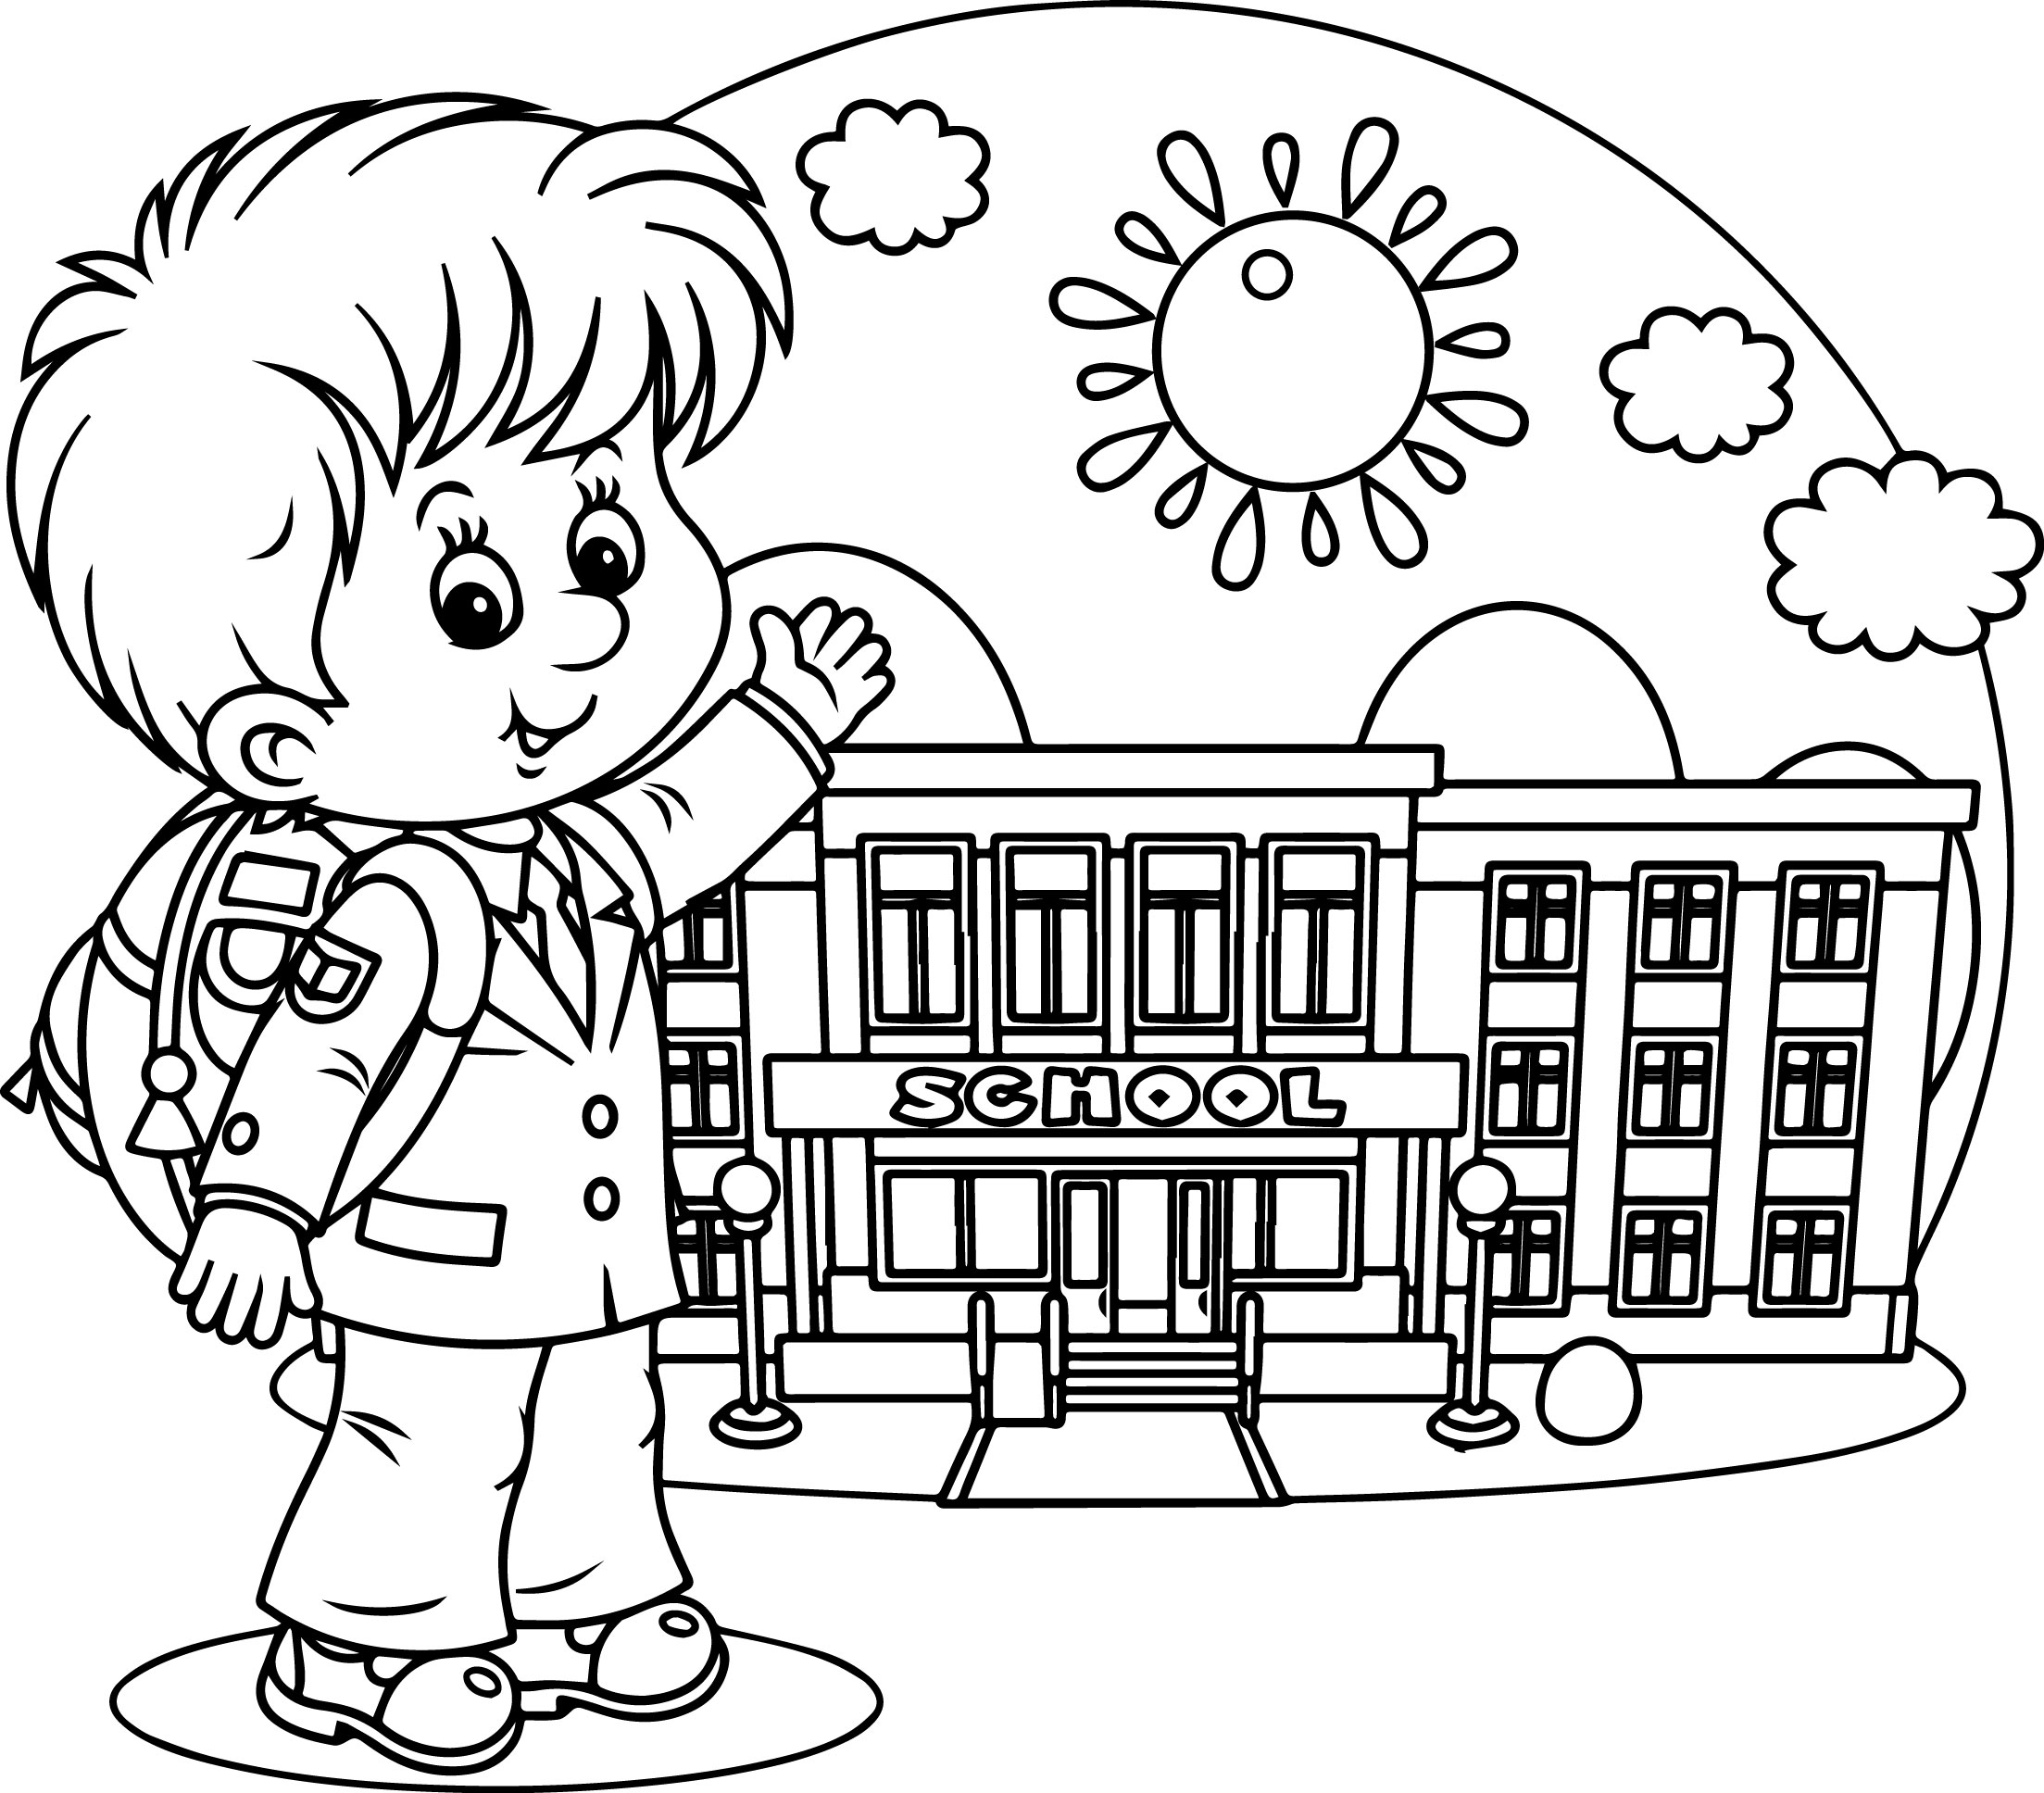 coloring pictures school back to school coloring page pictures school coloring